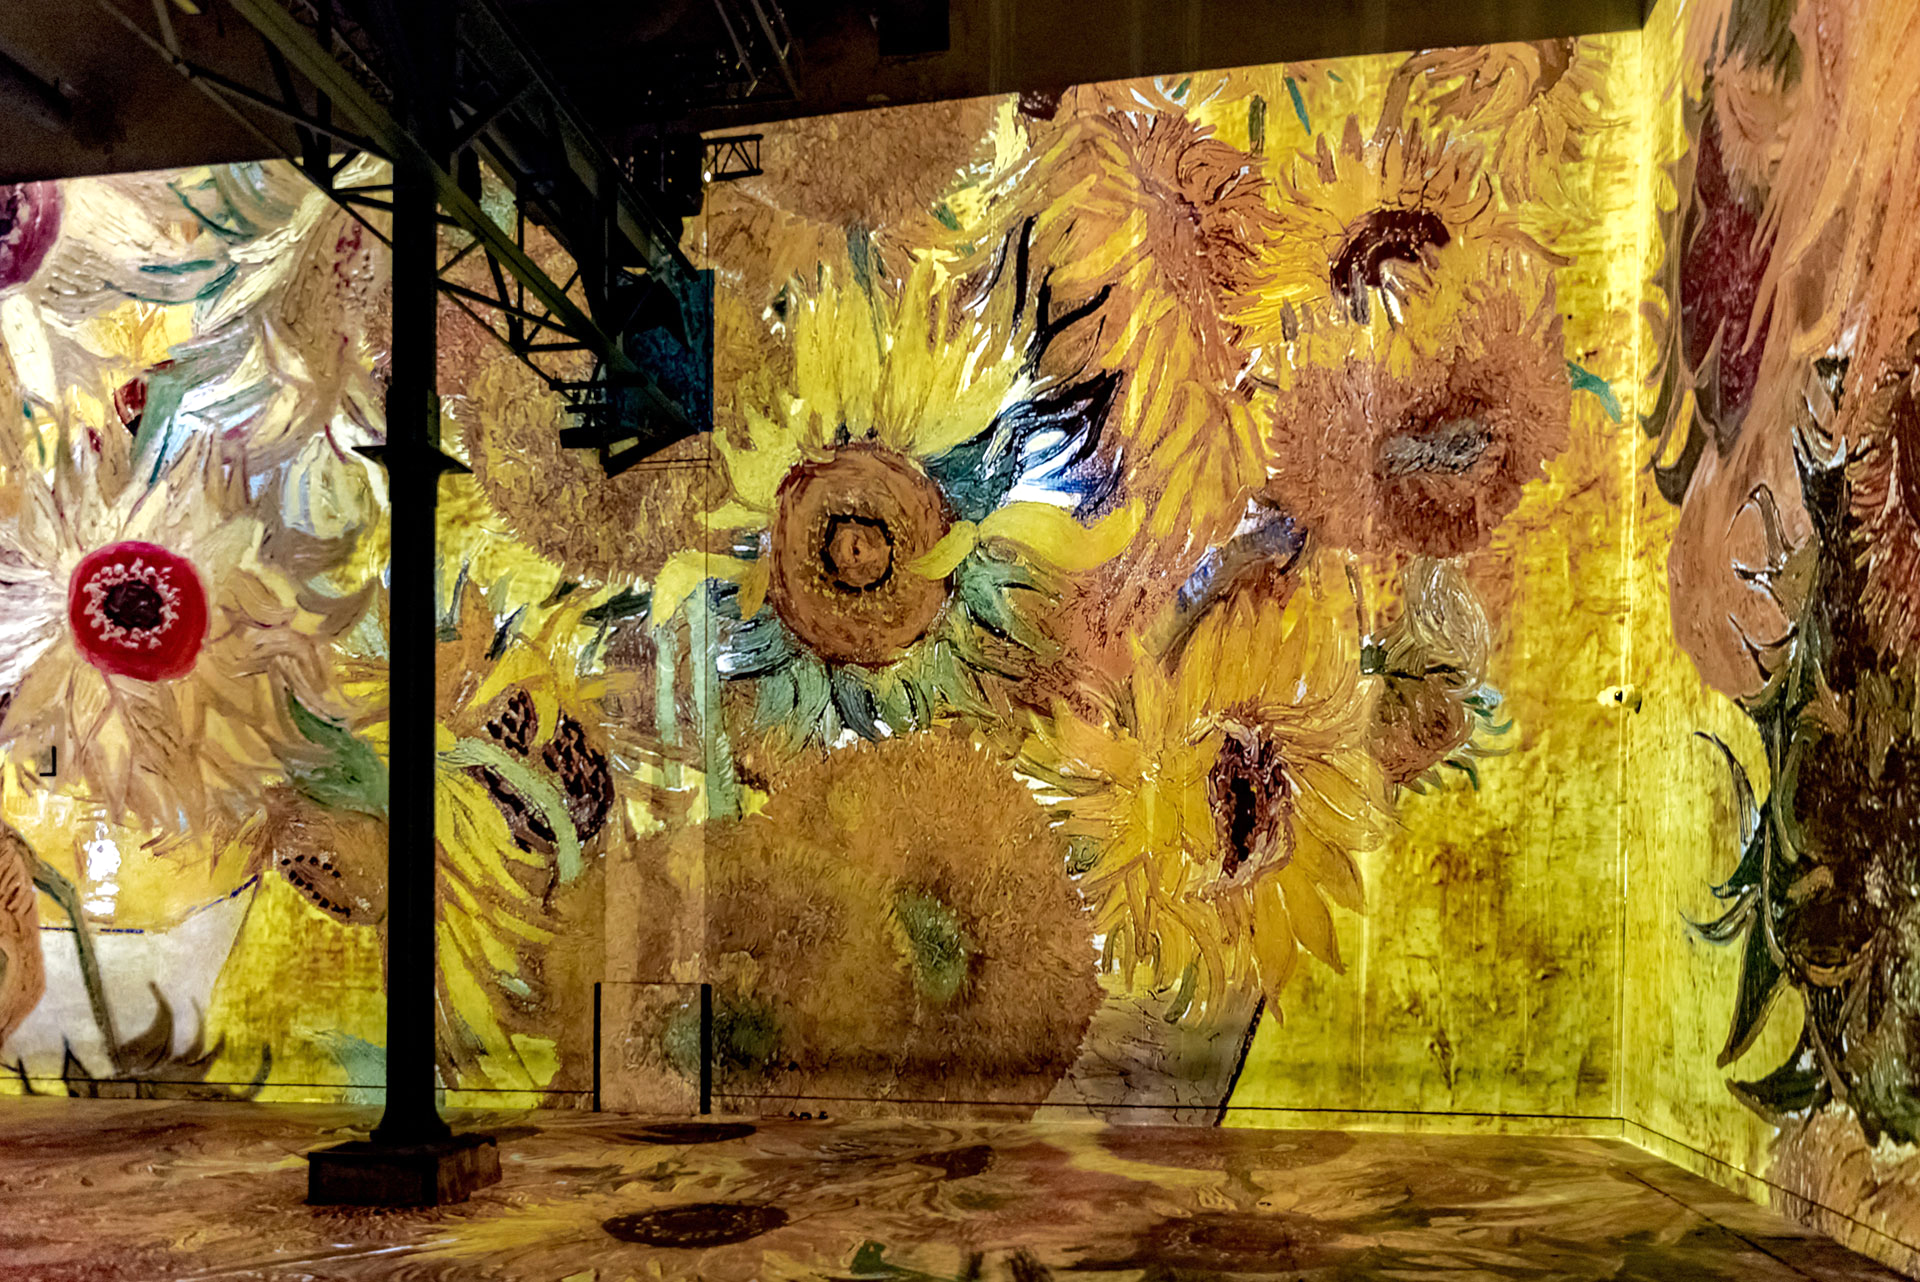 Simulation of the exhibition Gustav Klimt, Installation view 6| Gustav Klimt | Atelier des Lumières | STIR